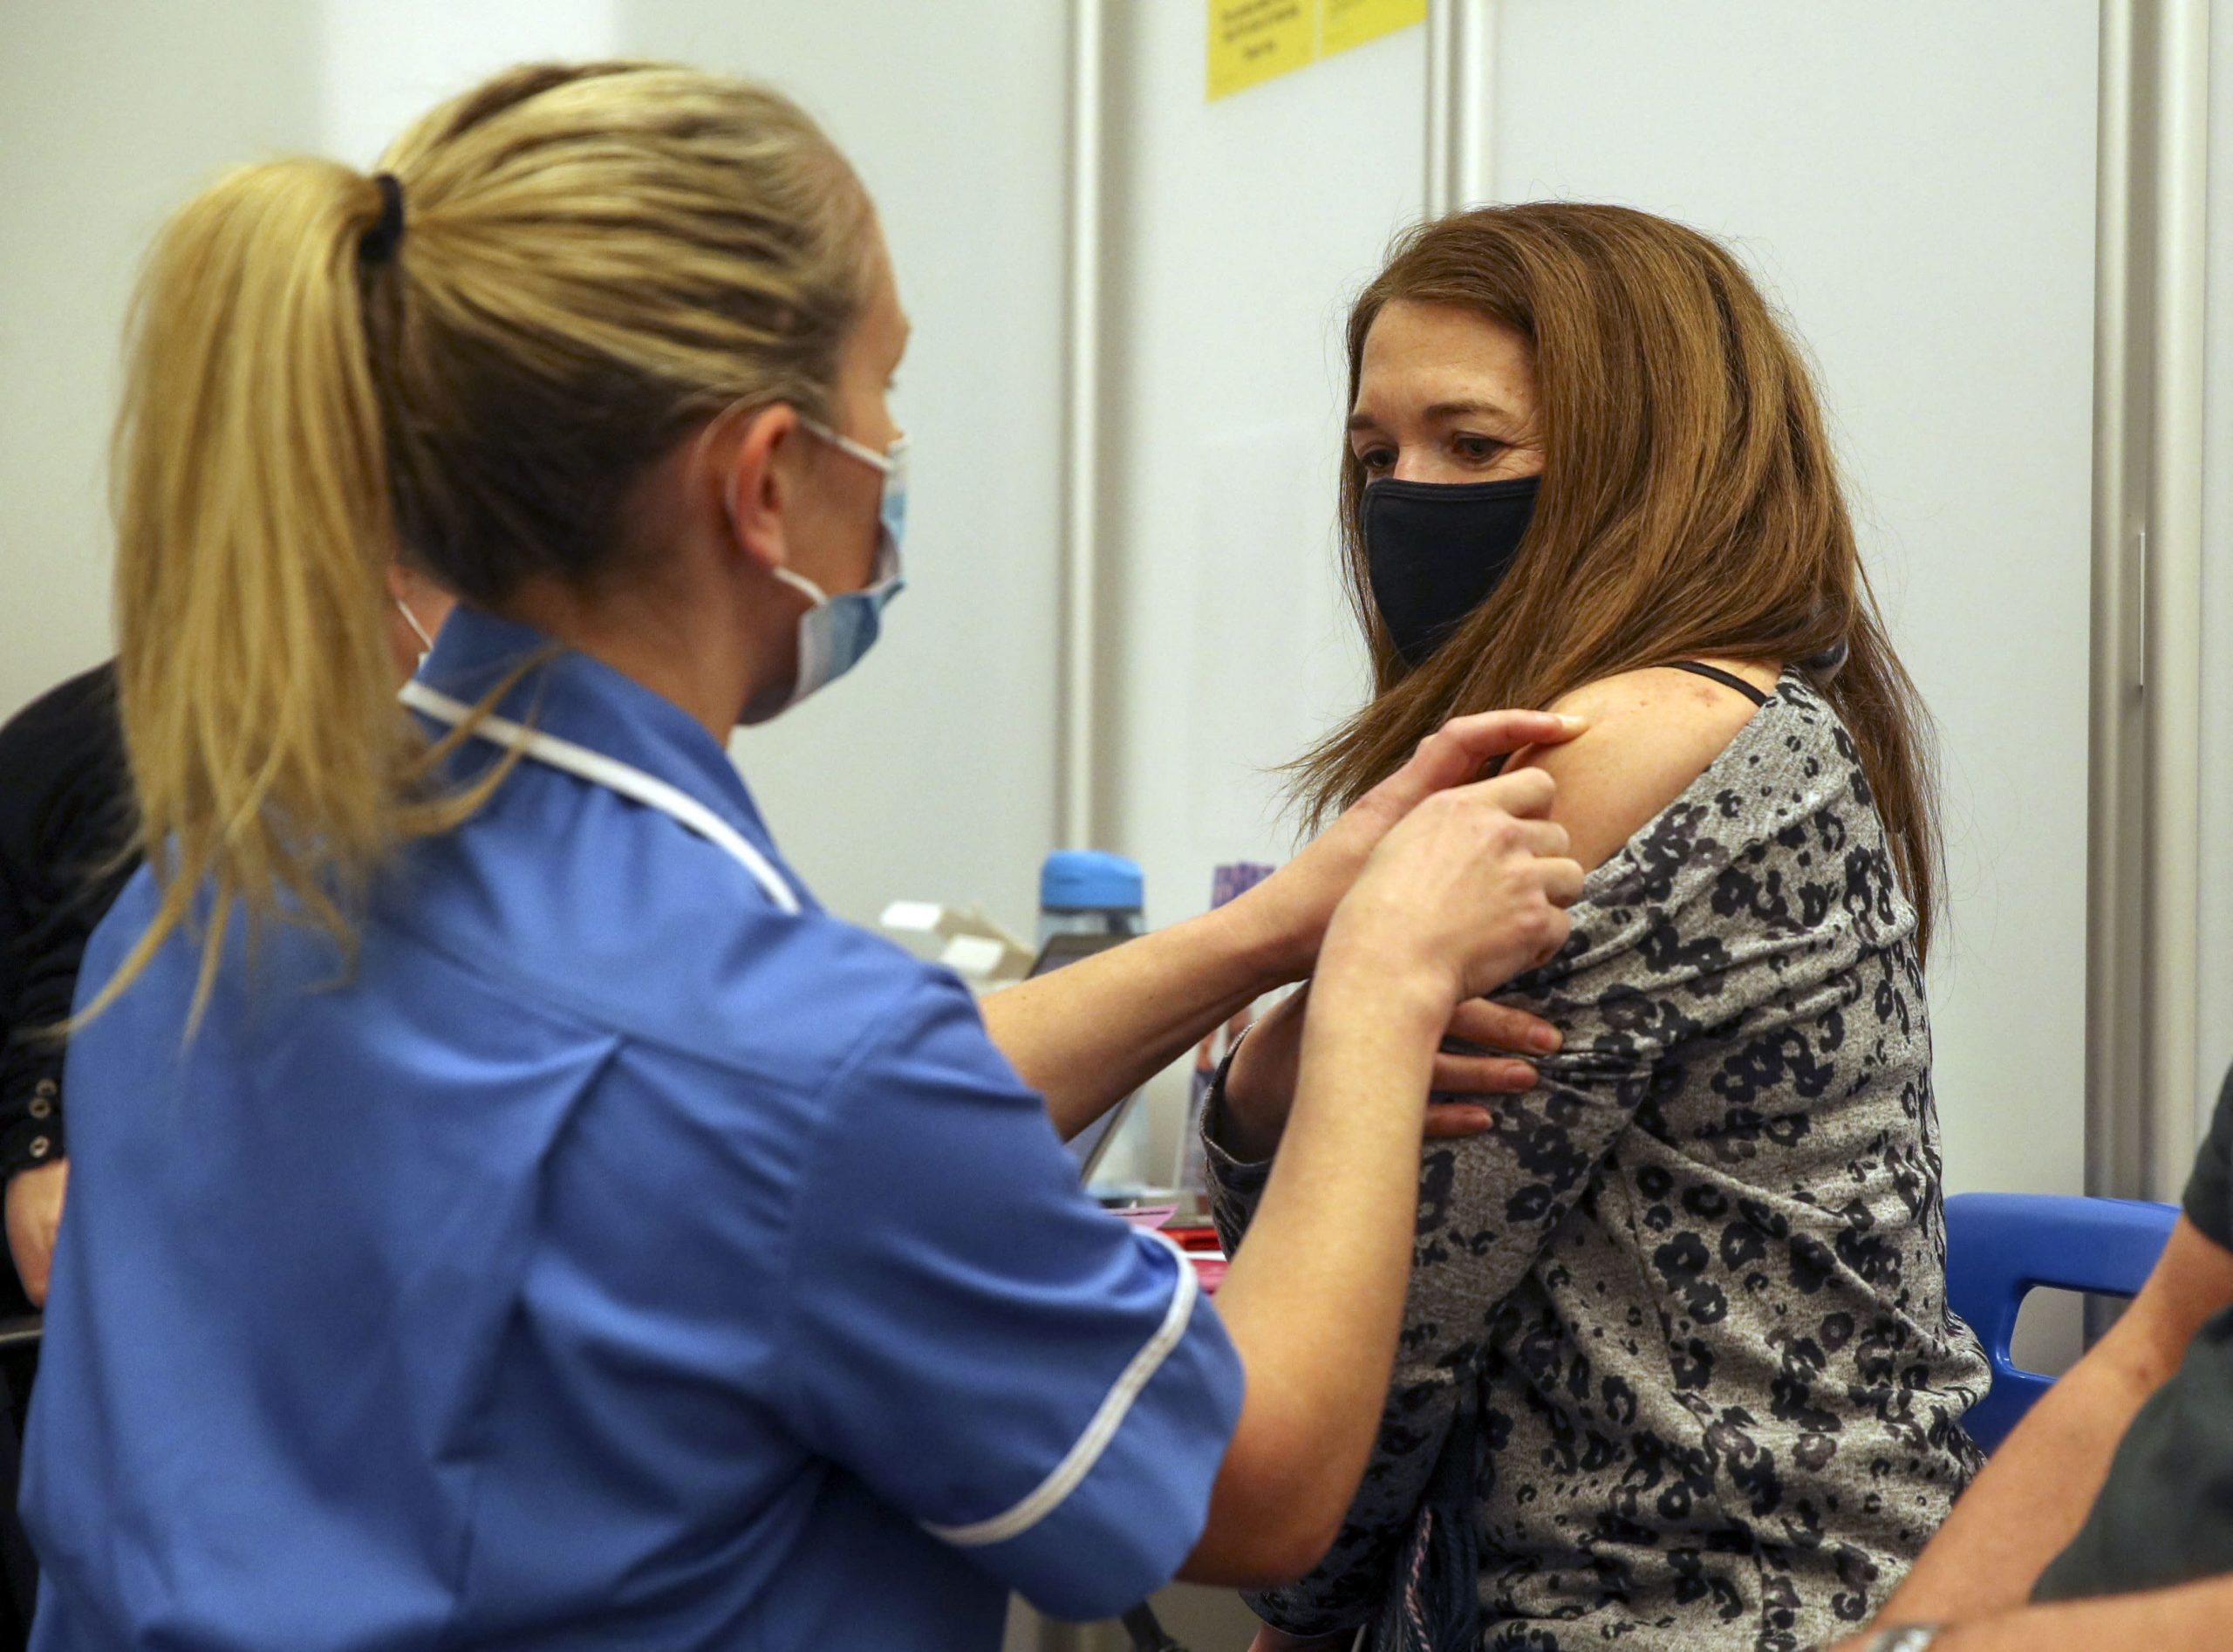 Oxford to launch human challenge trial to study immune response